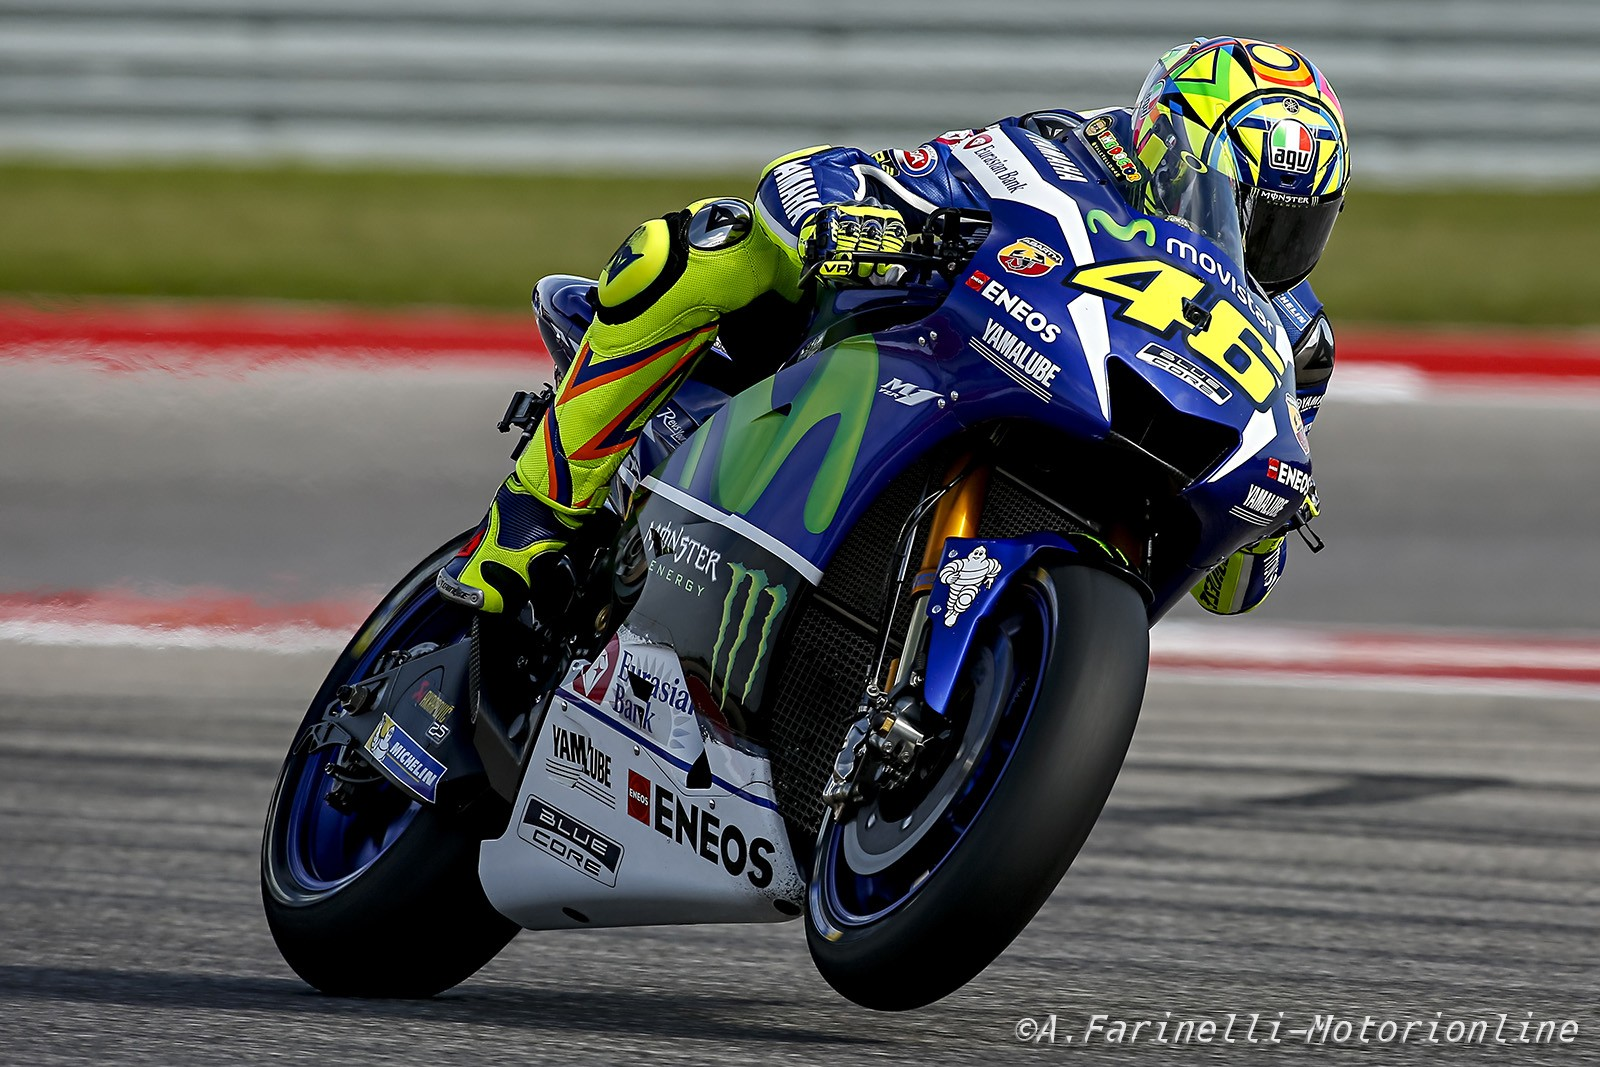 Motogp Austin Texas | MotoGP 2017 Info, Video, Points Table